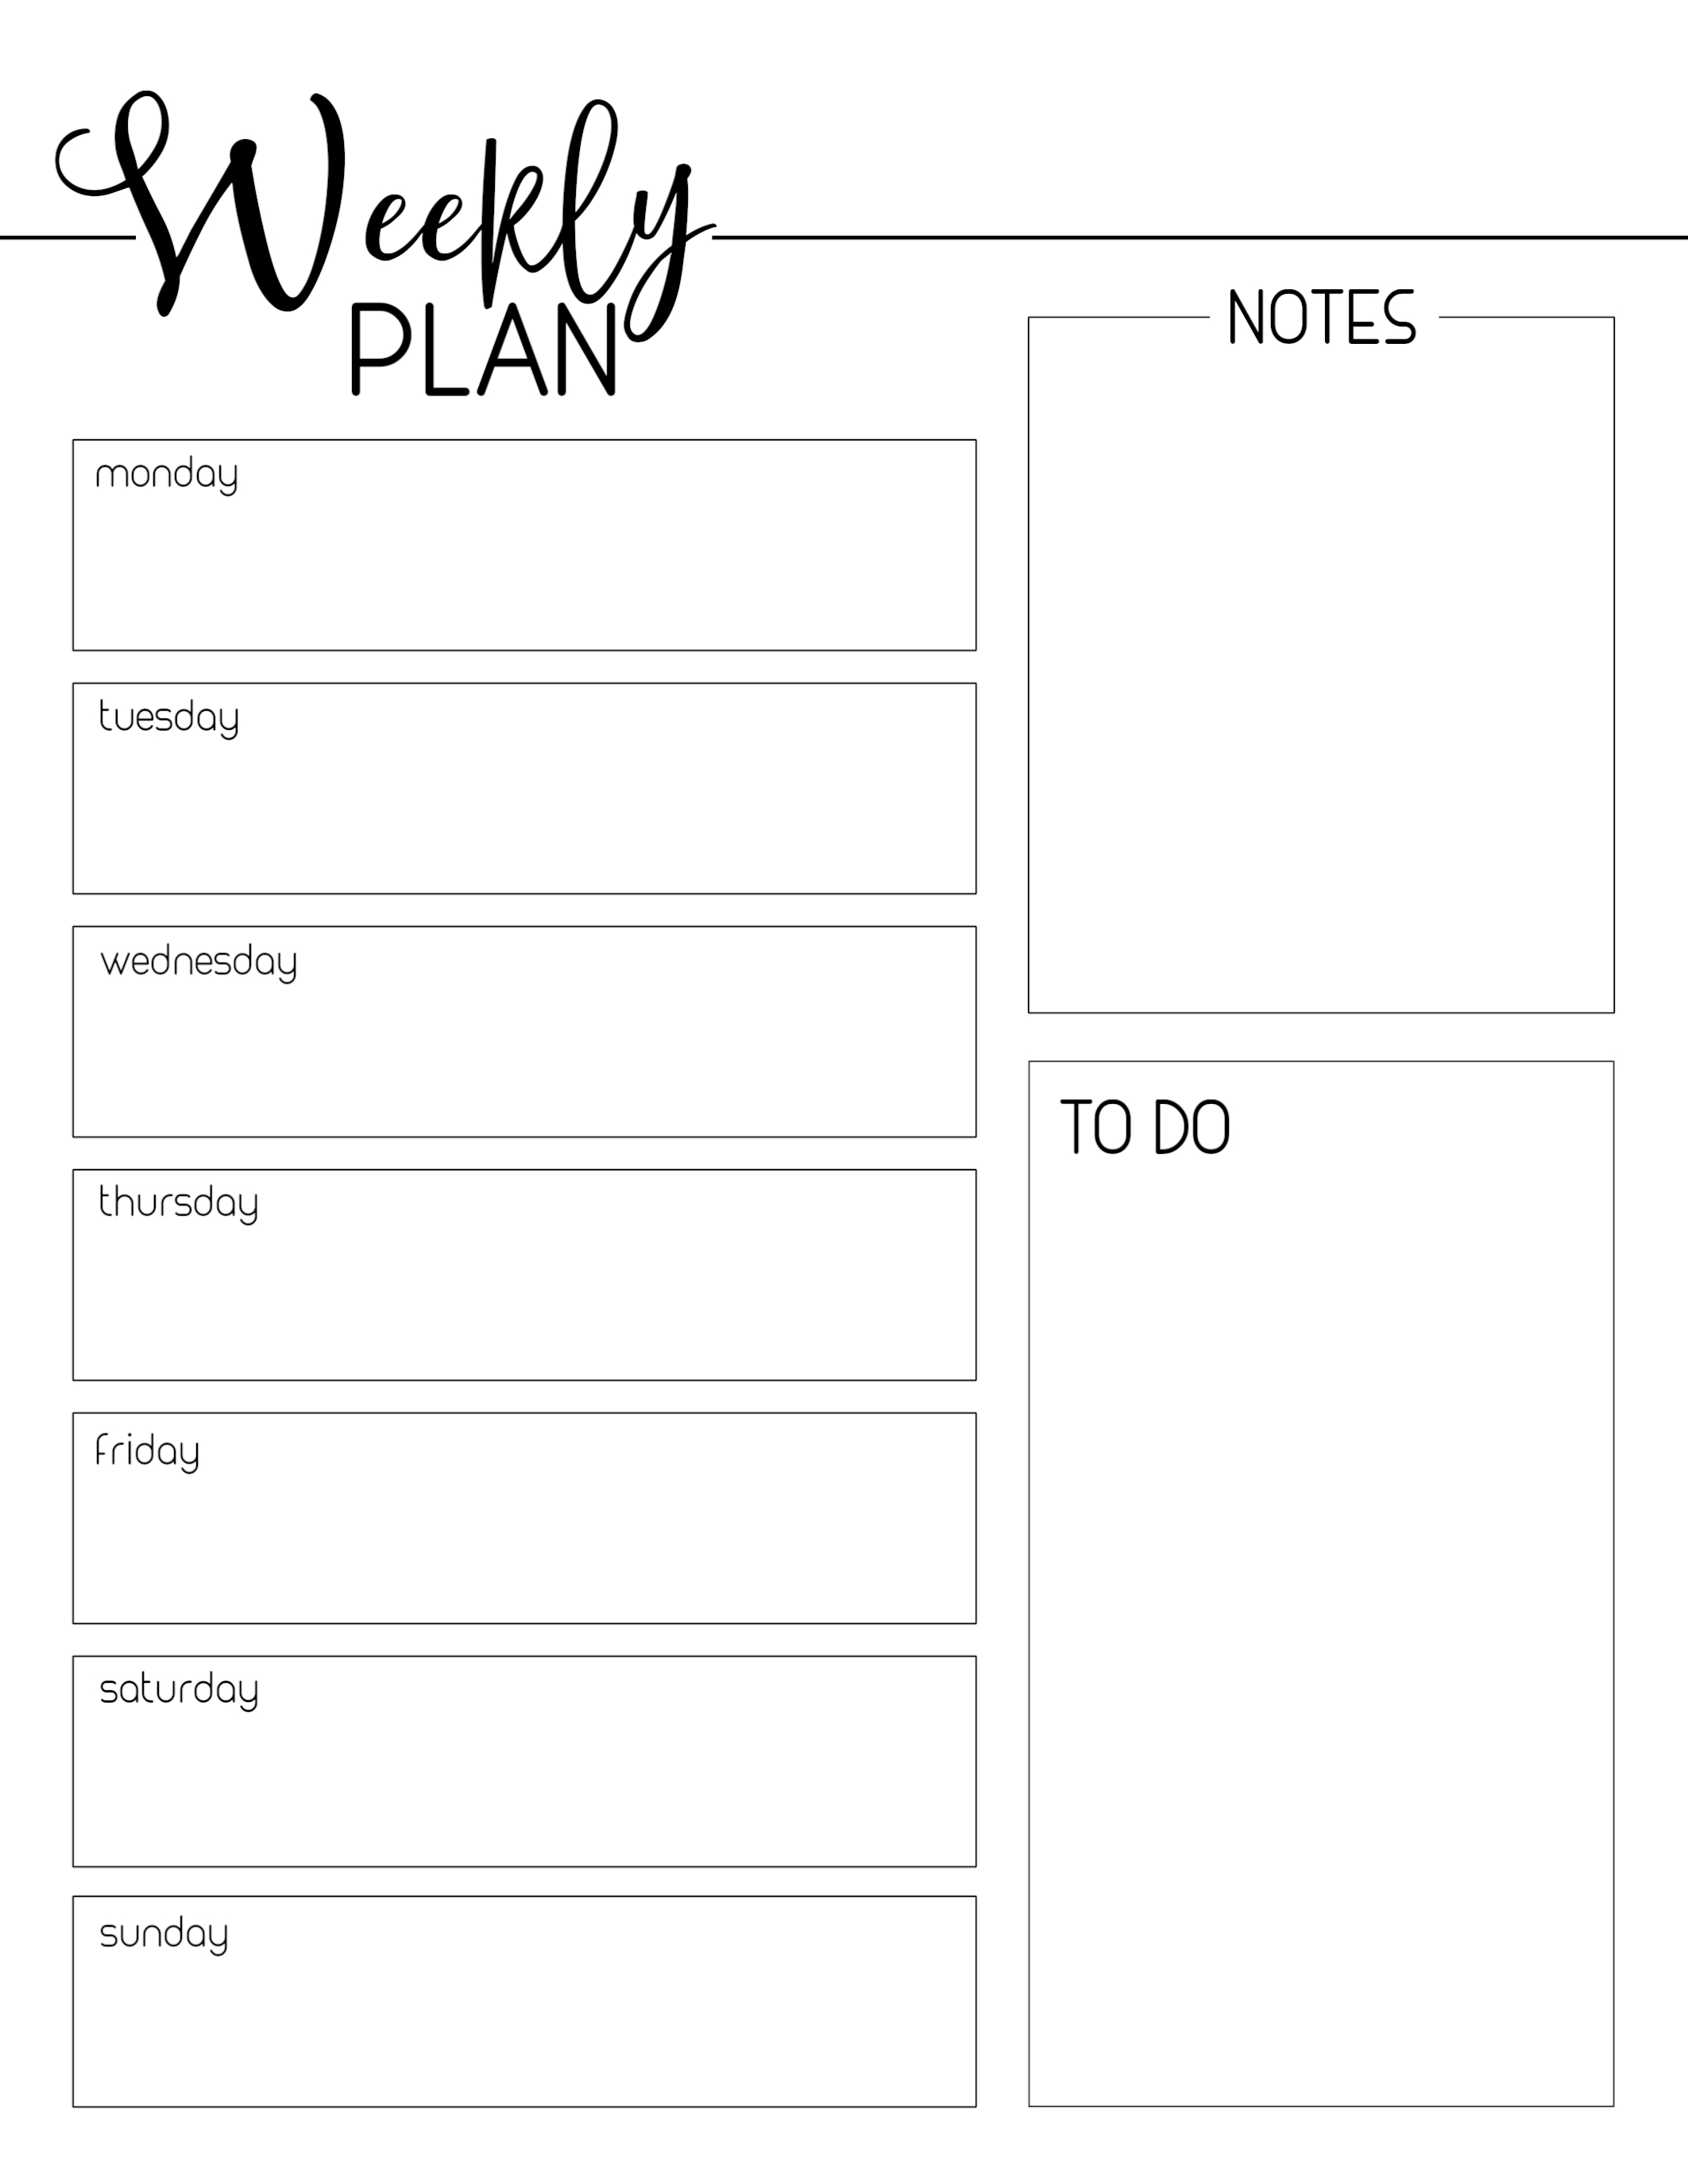 Weekly Planner Template Free Printable - Paper Trail Design